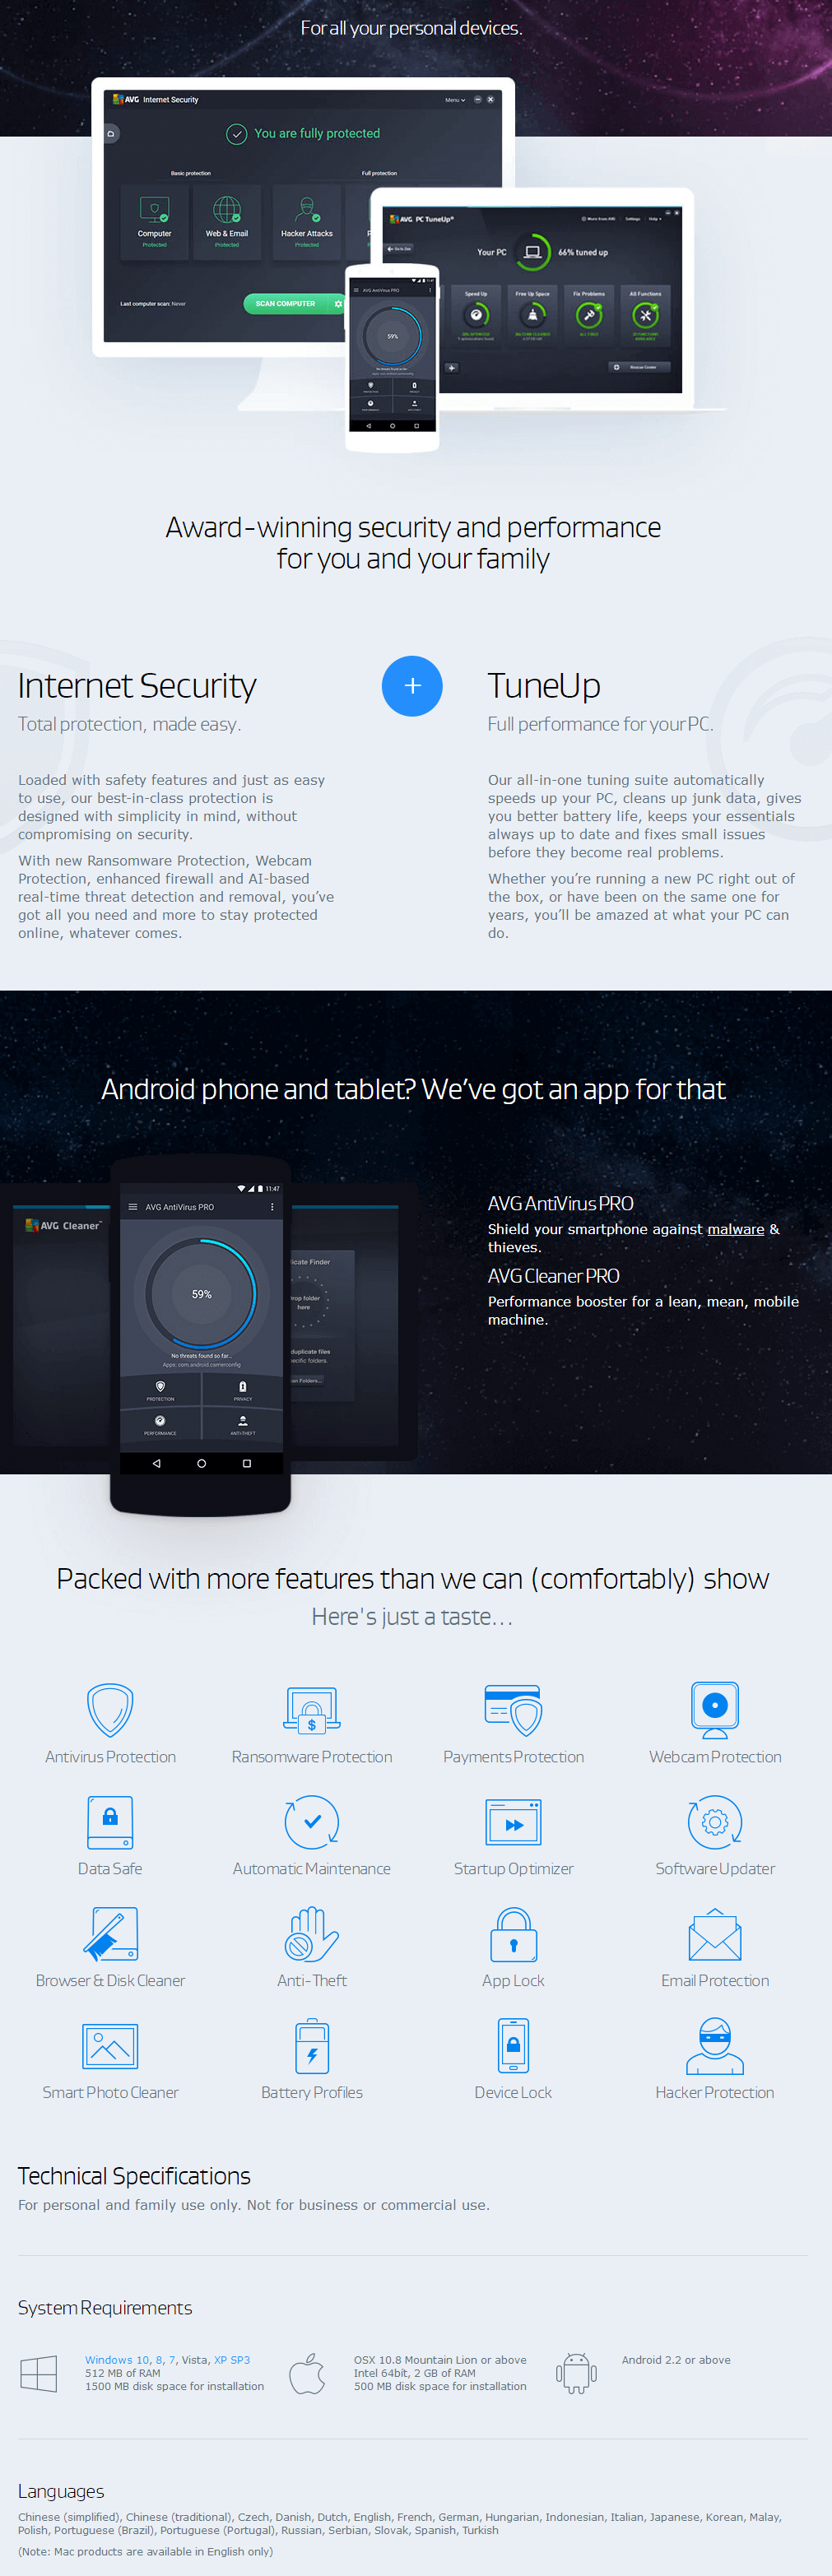 AVG Ultimate Feature